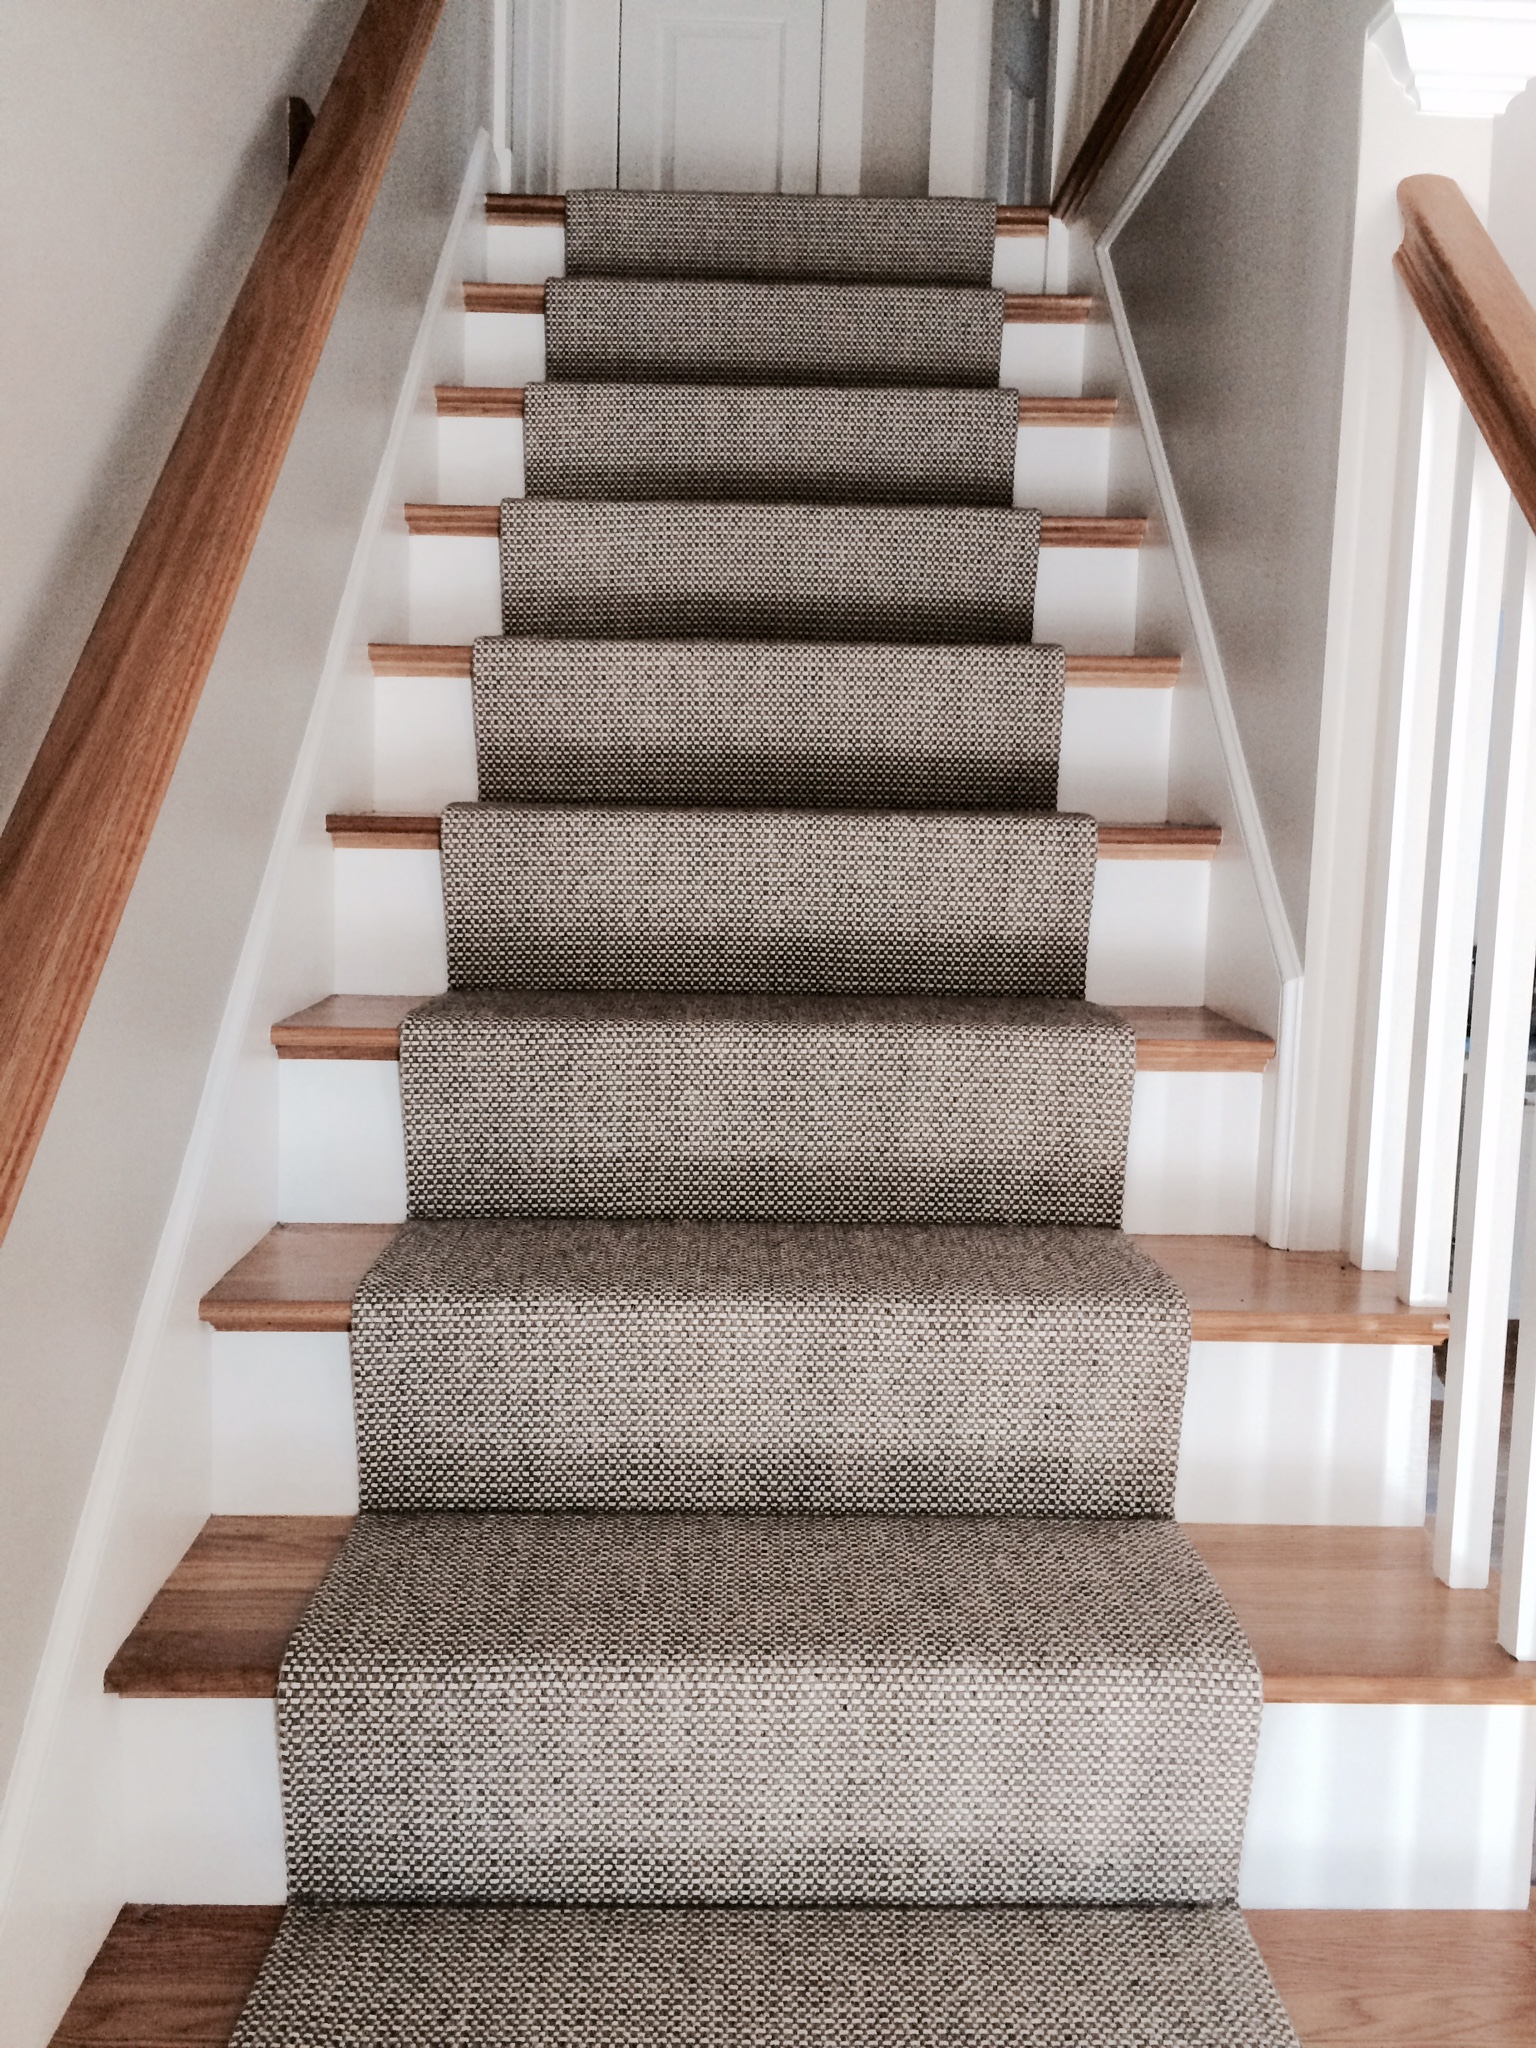 carpet runner for stairs photo - 2